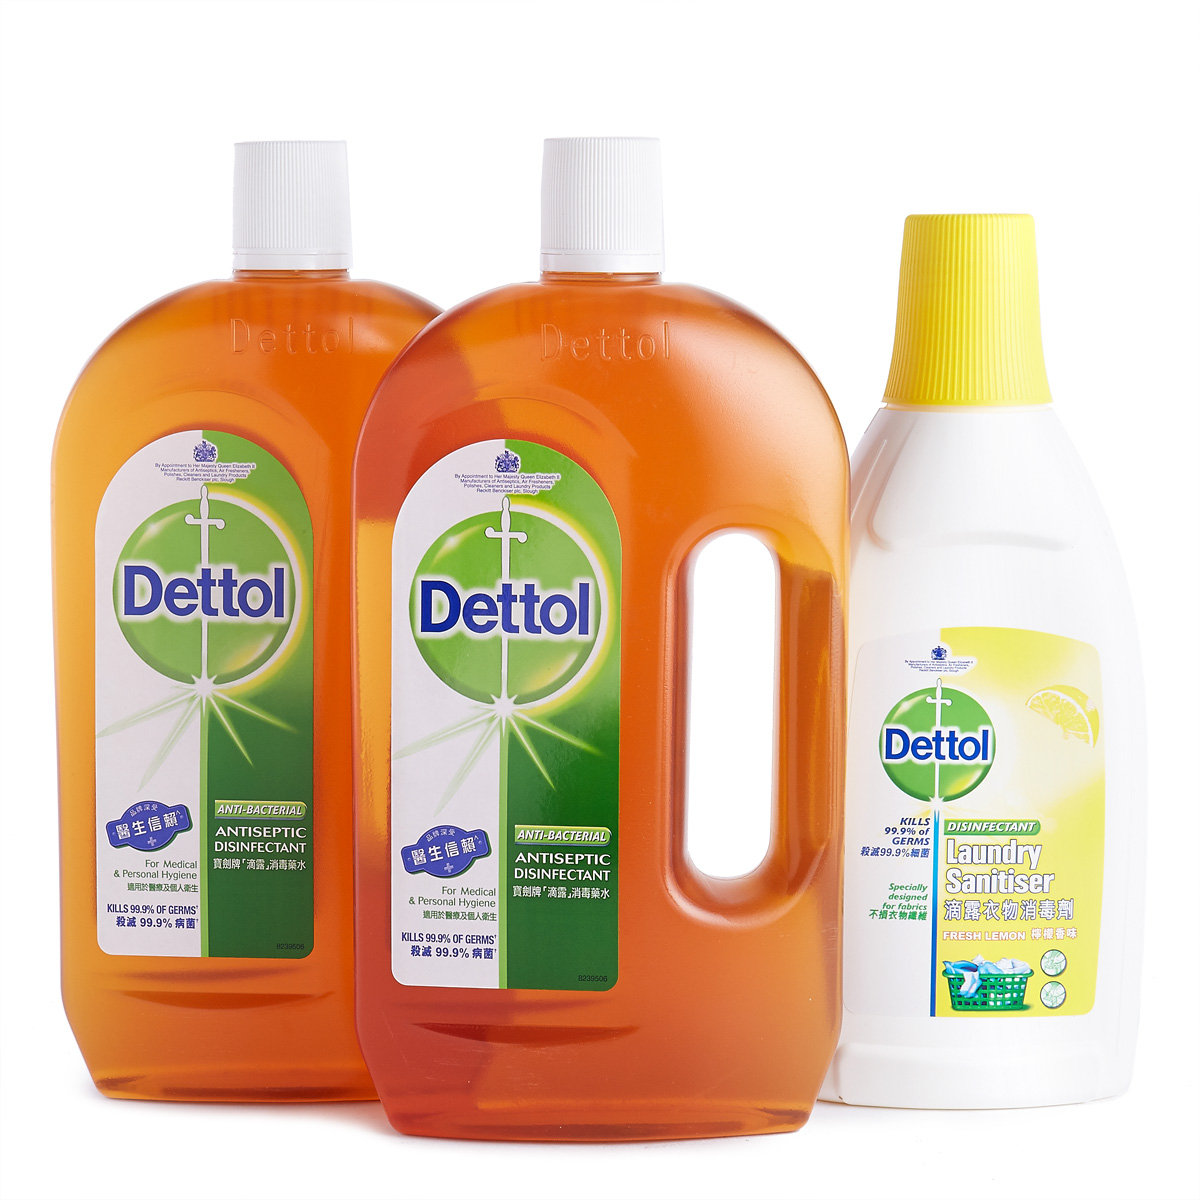 Dettol Antiseptic Liquid Twin Pack Laundry Sanitiser Random Betadine Solution 30 Ml Free Gift Favor